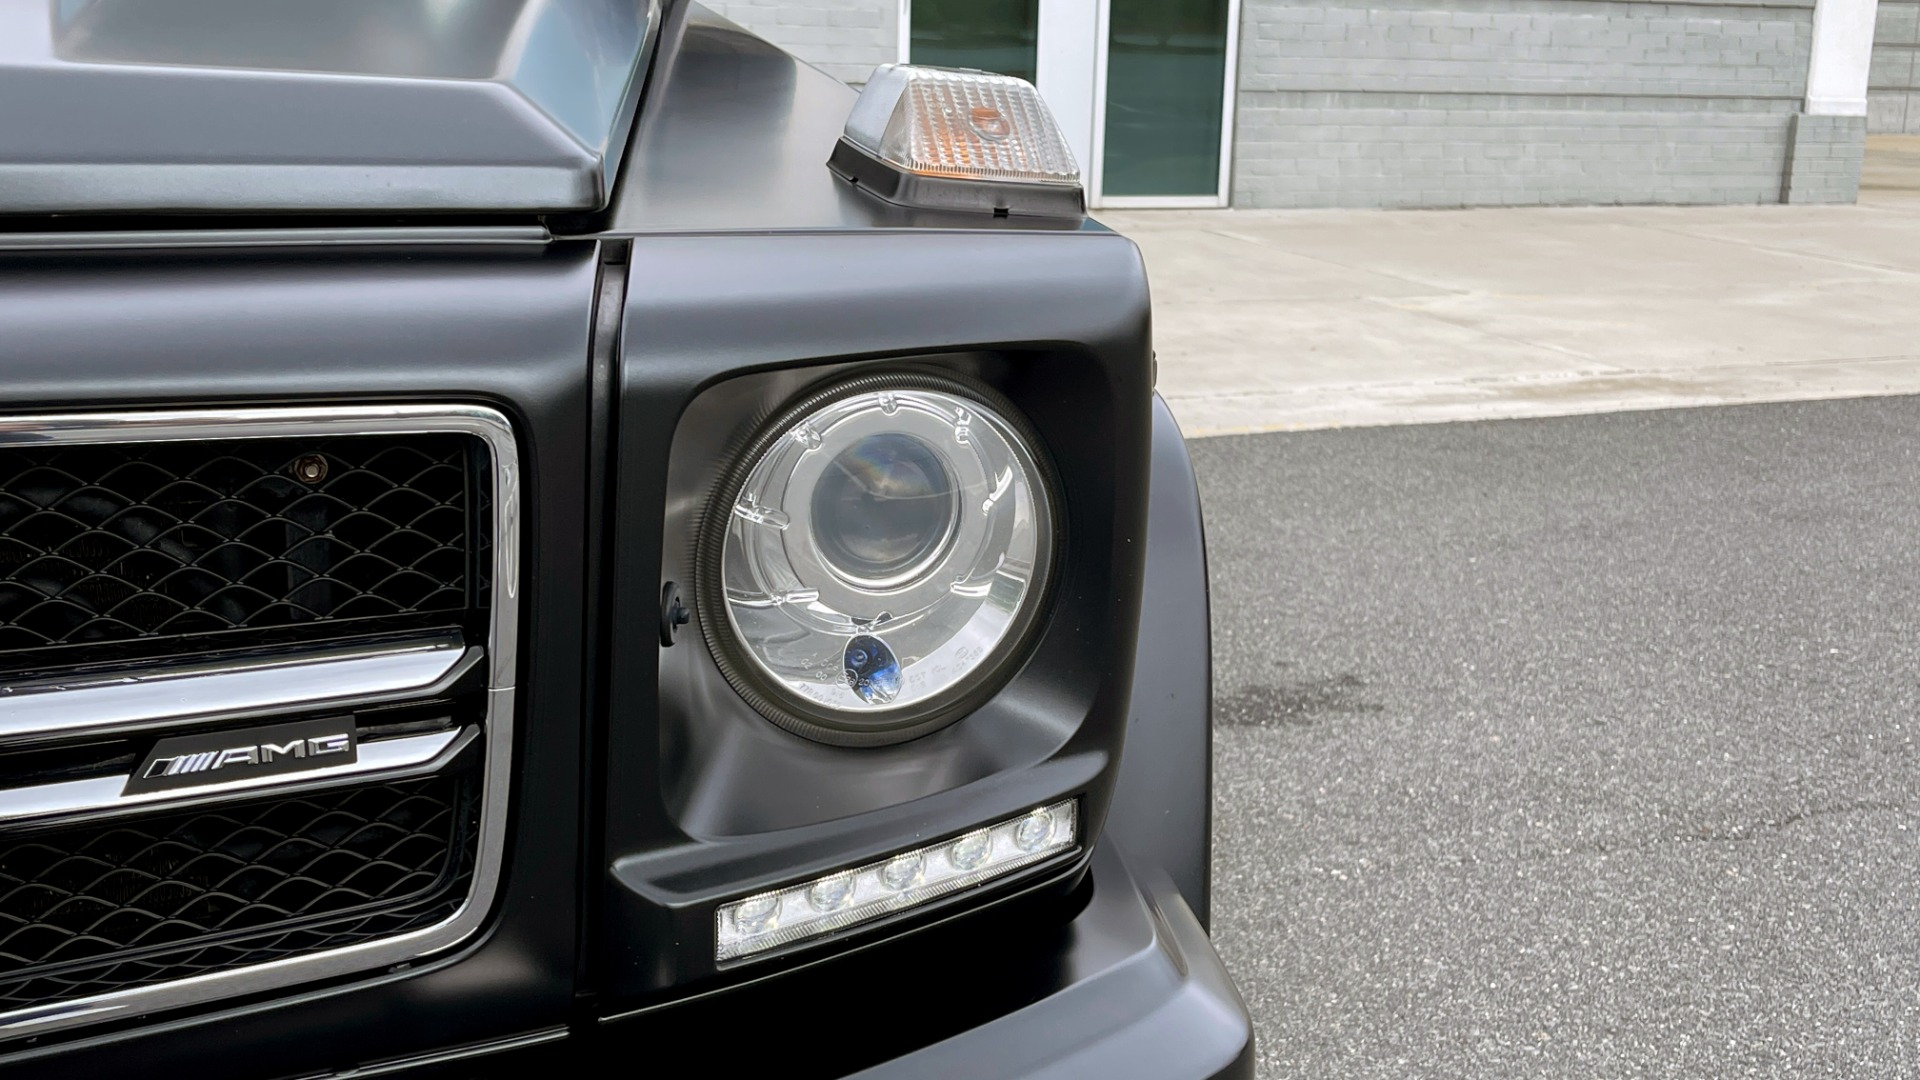 Used 2017 Mercedes-Benz G-CLASS AMG G 63 / DESIGNO PKG / NAV / SUNROOF / H/K SND / REARVIEW for sale $124,999 at Formula Imports in Charlotte NC 28227 21